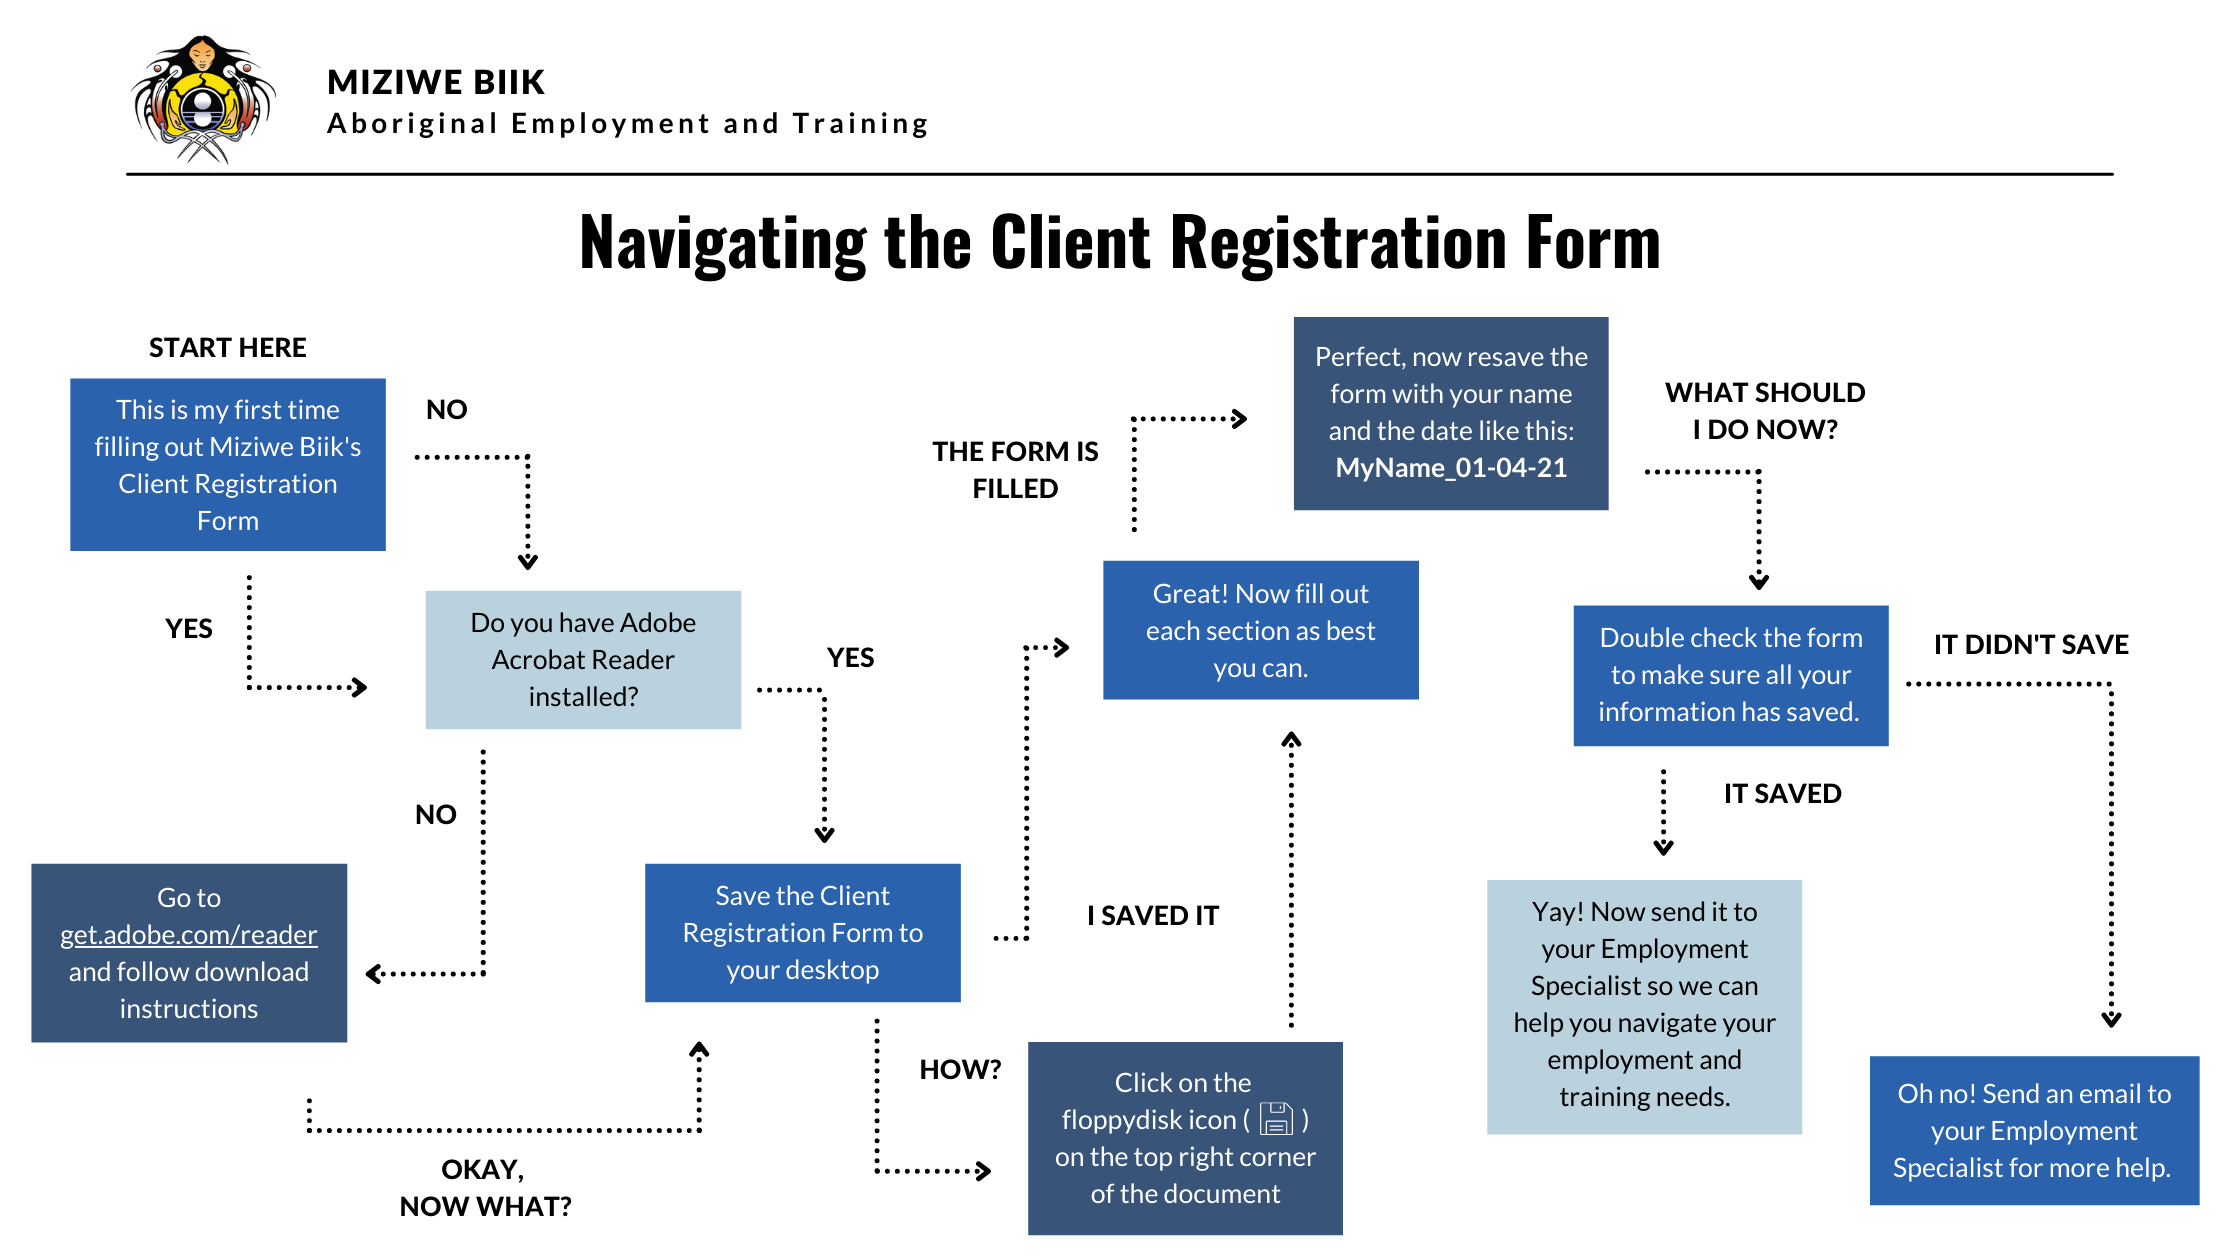 A flow chart to troubleshoot issues with a form.